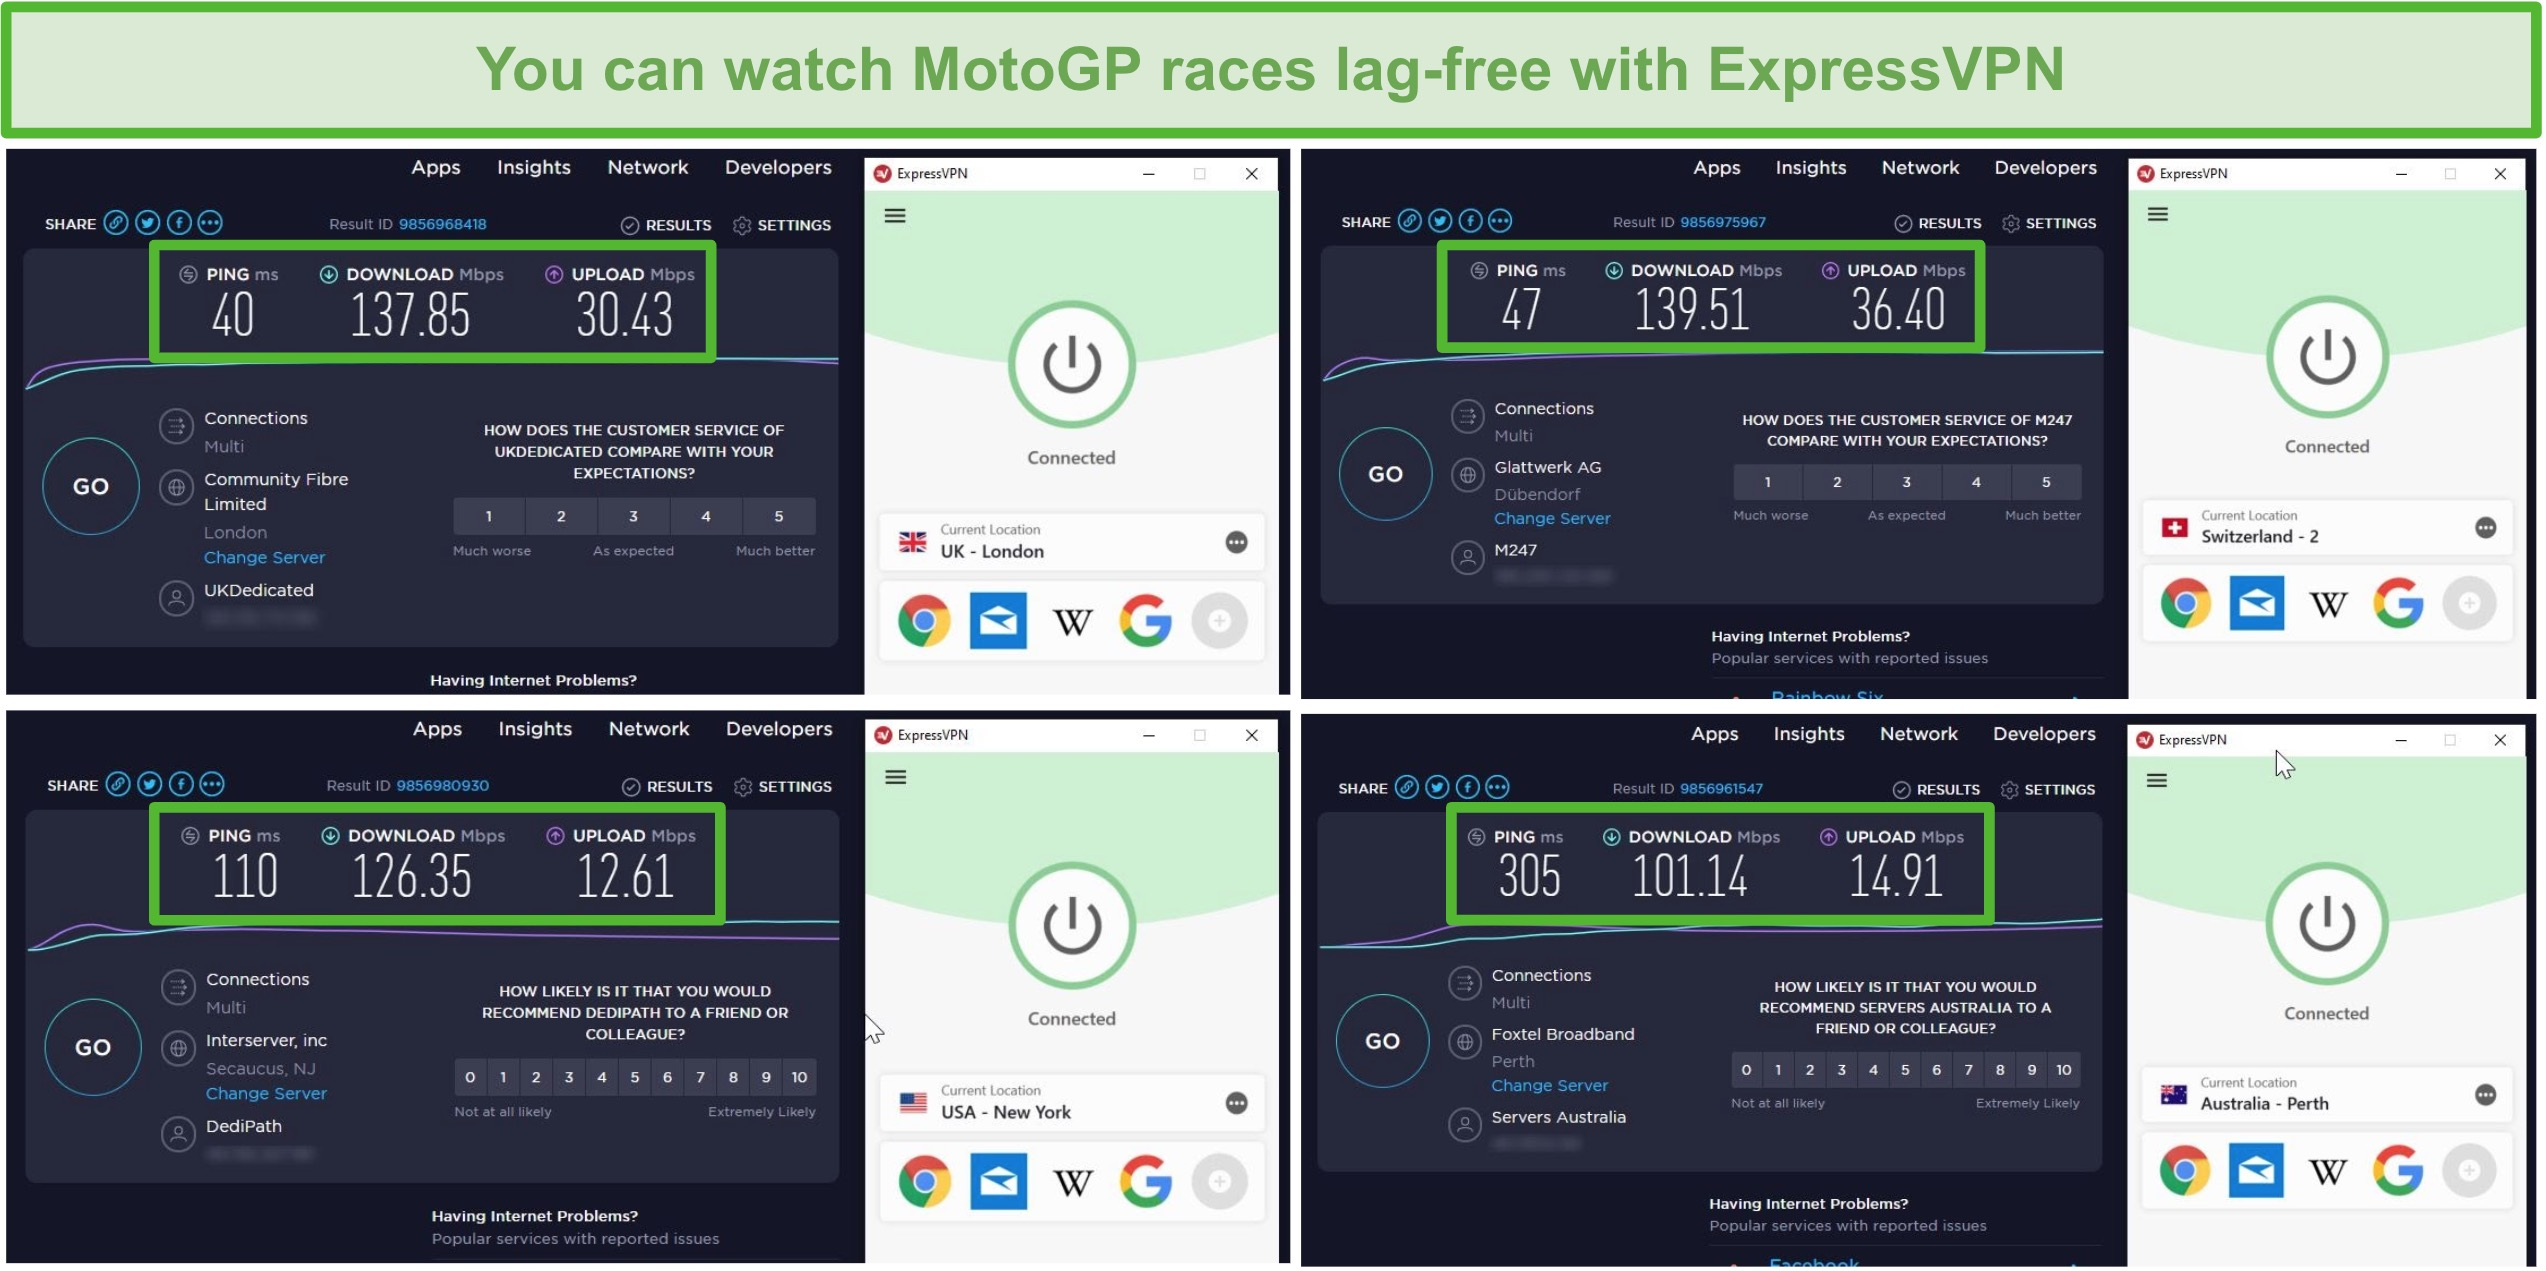 Screenshots of ExpressVPN speed test results while connected to servers in the UK, Switzerland, US, and Australia.